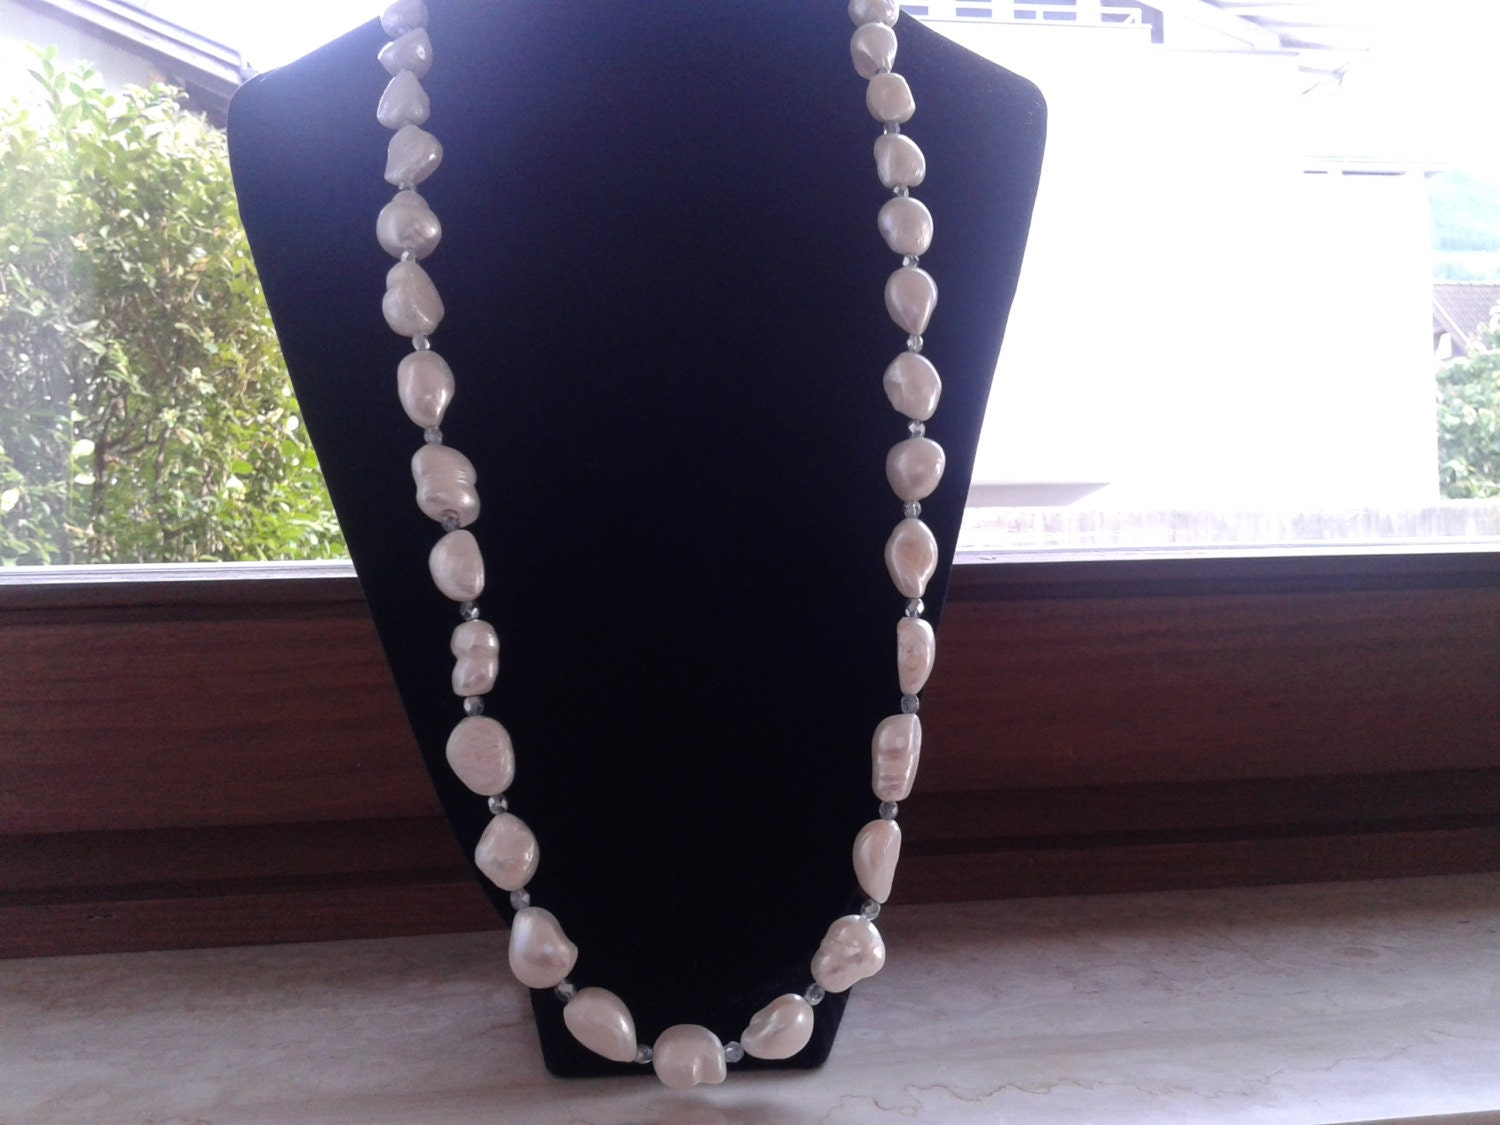 Necklace Handmade With Large White Baroque Pearls Ayu